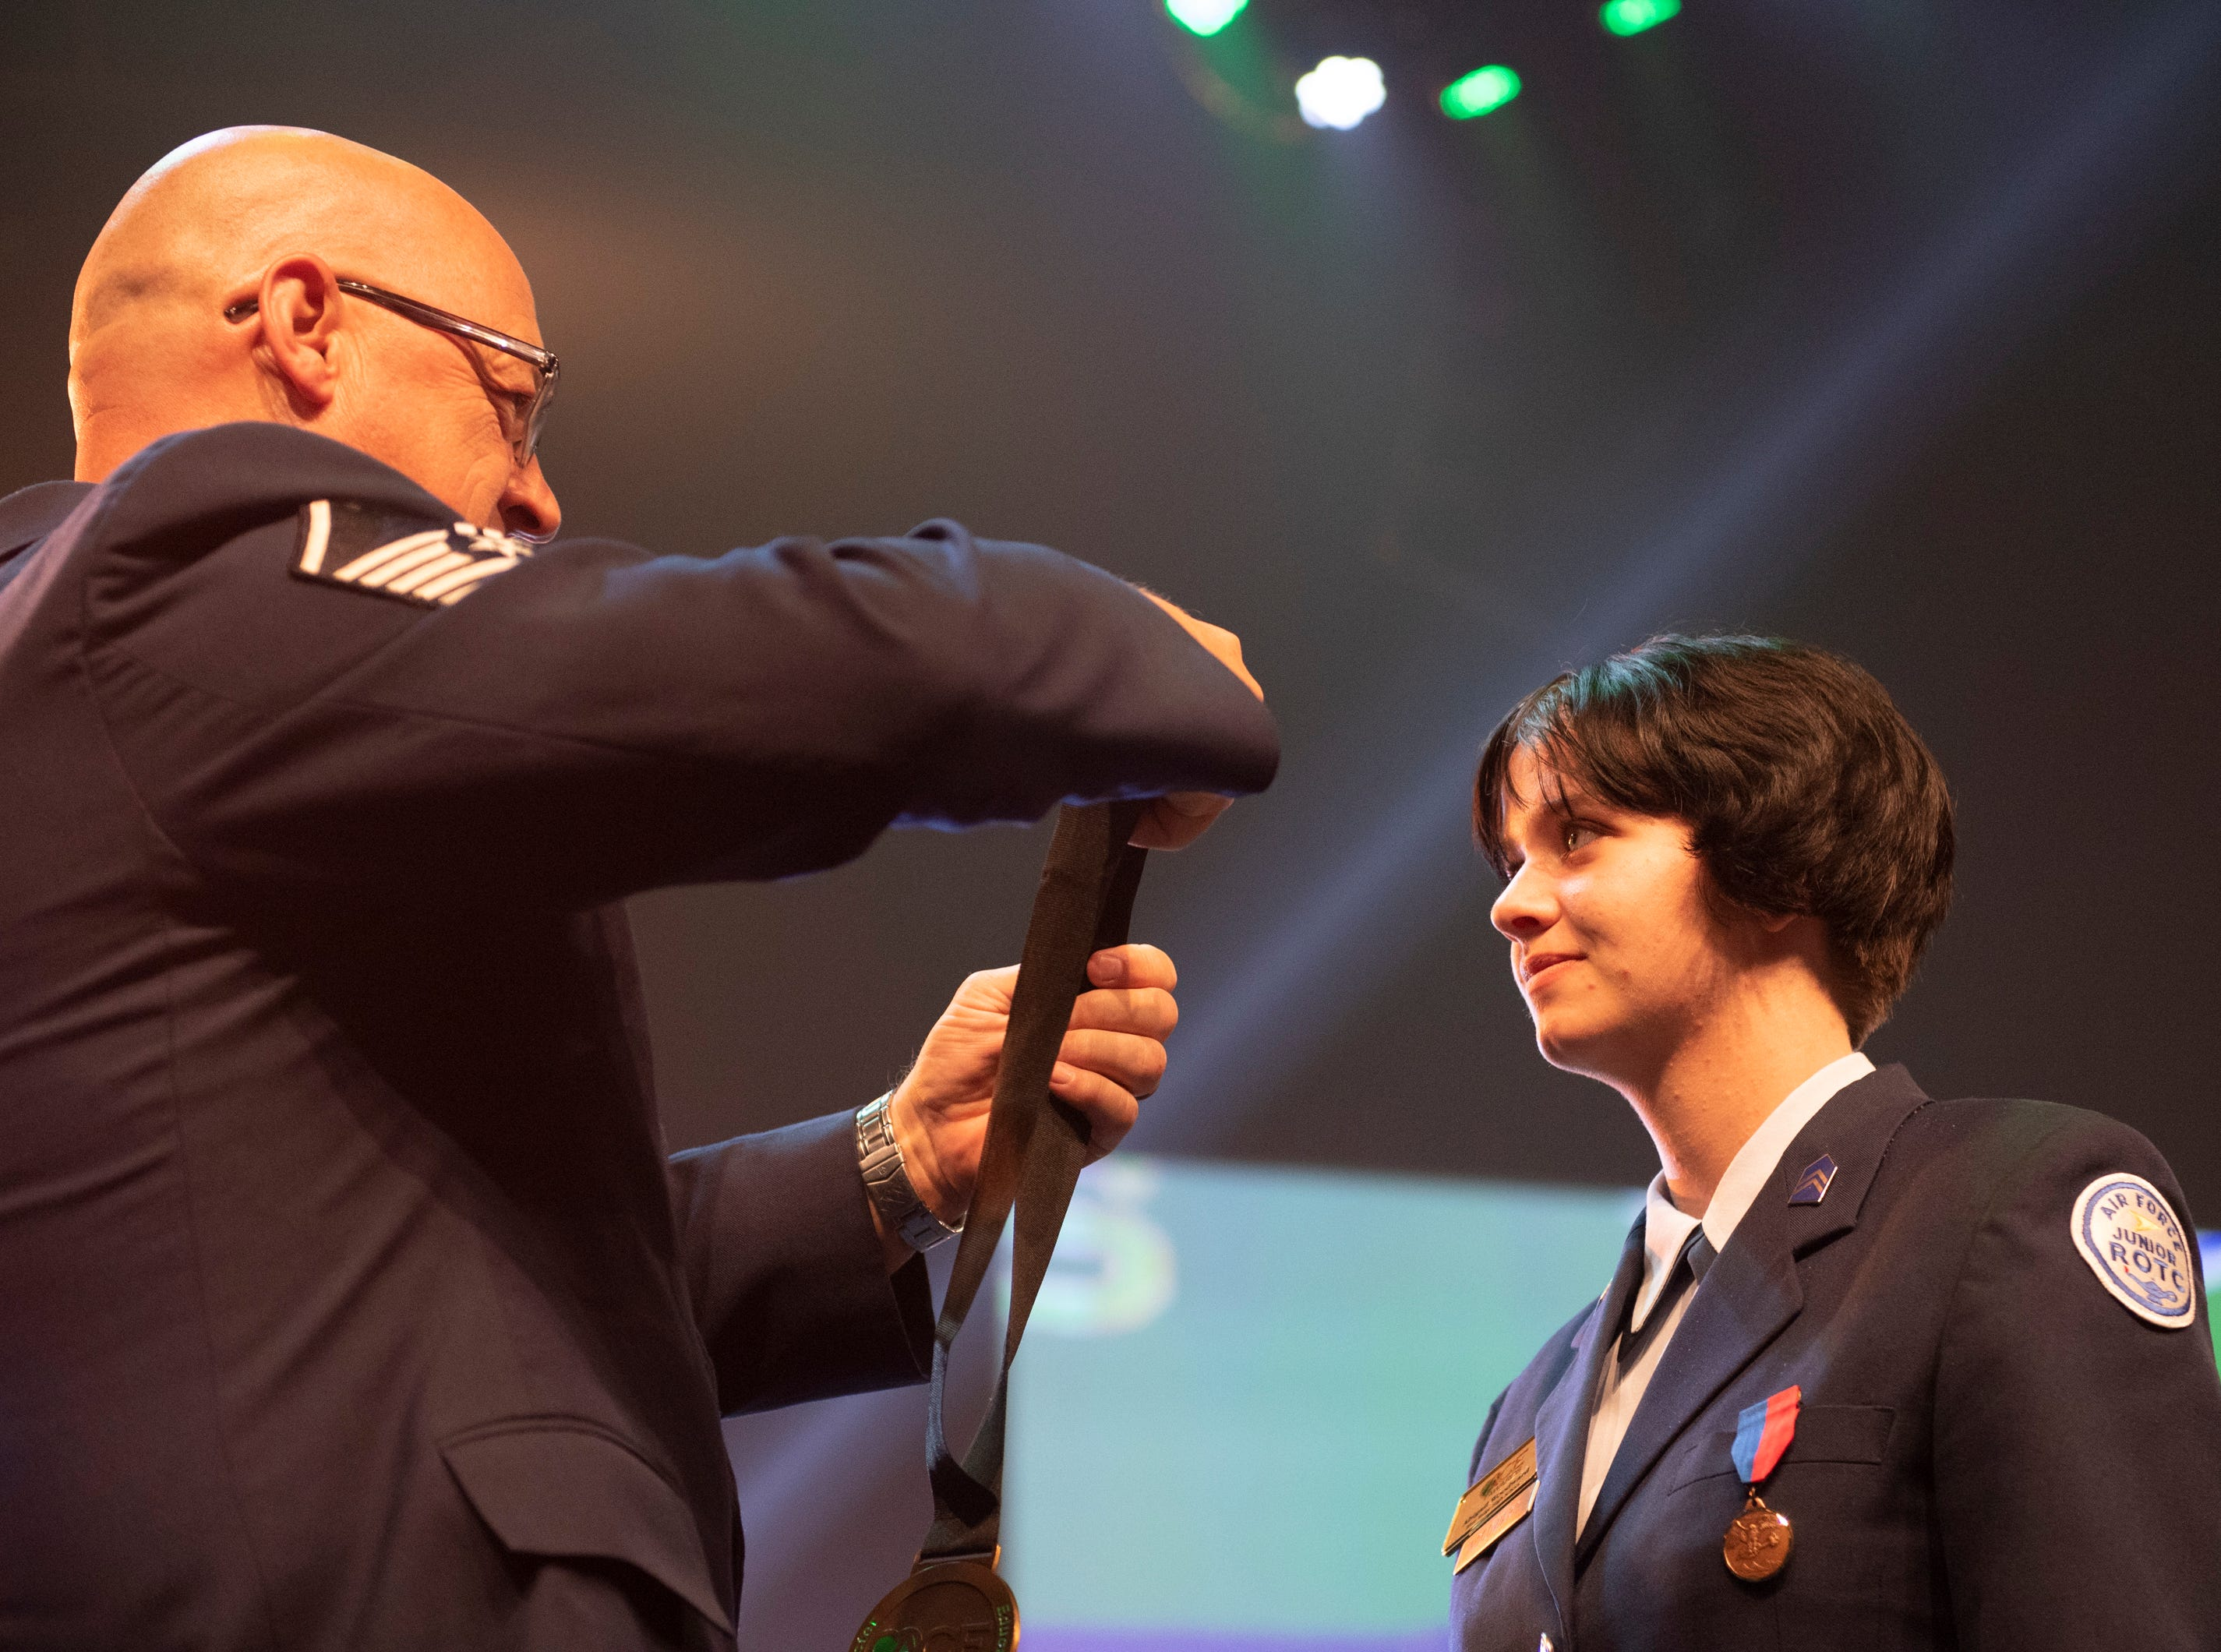 Abigail Woodward receives her ACE awards medal from Air Force JROTC instructor retired Master Sgt. Fred Fuller during the Coaches 4 Character ACE Awards held at Relentless Church Wednesday, May 15, 2019.